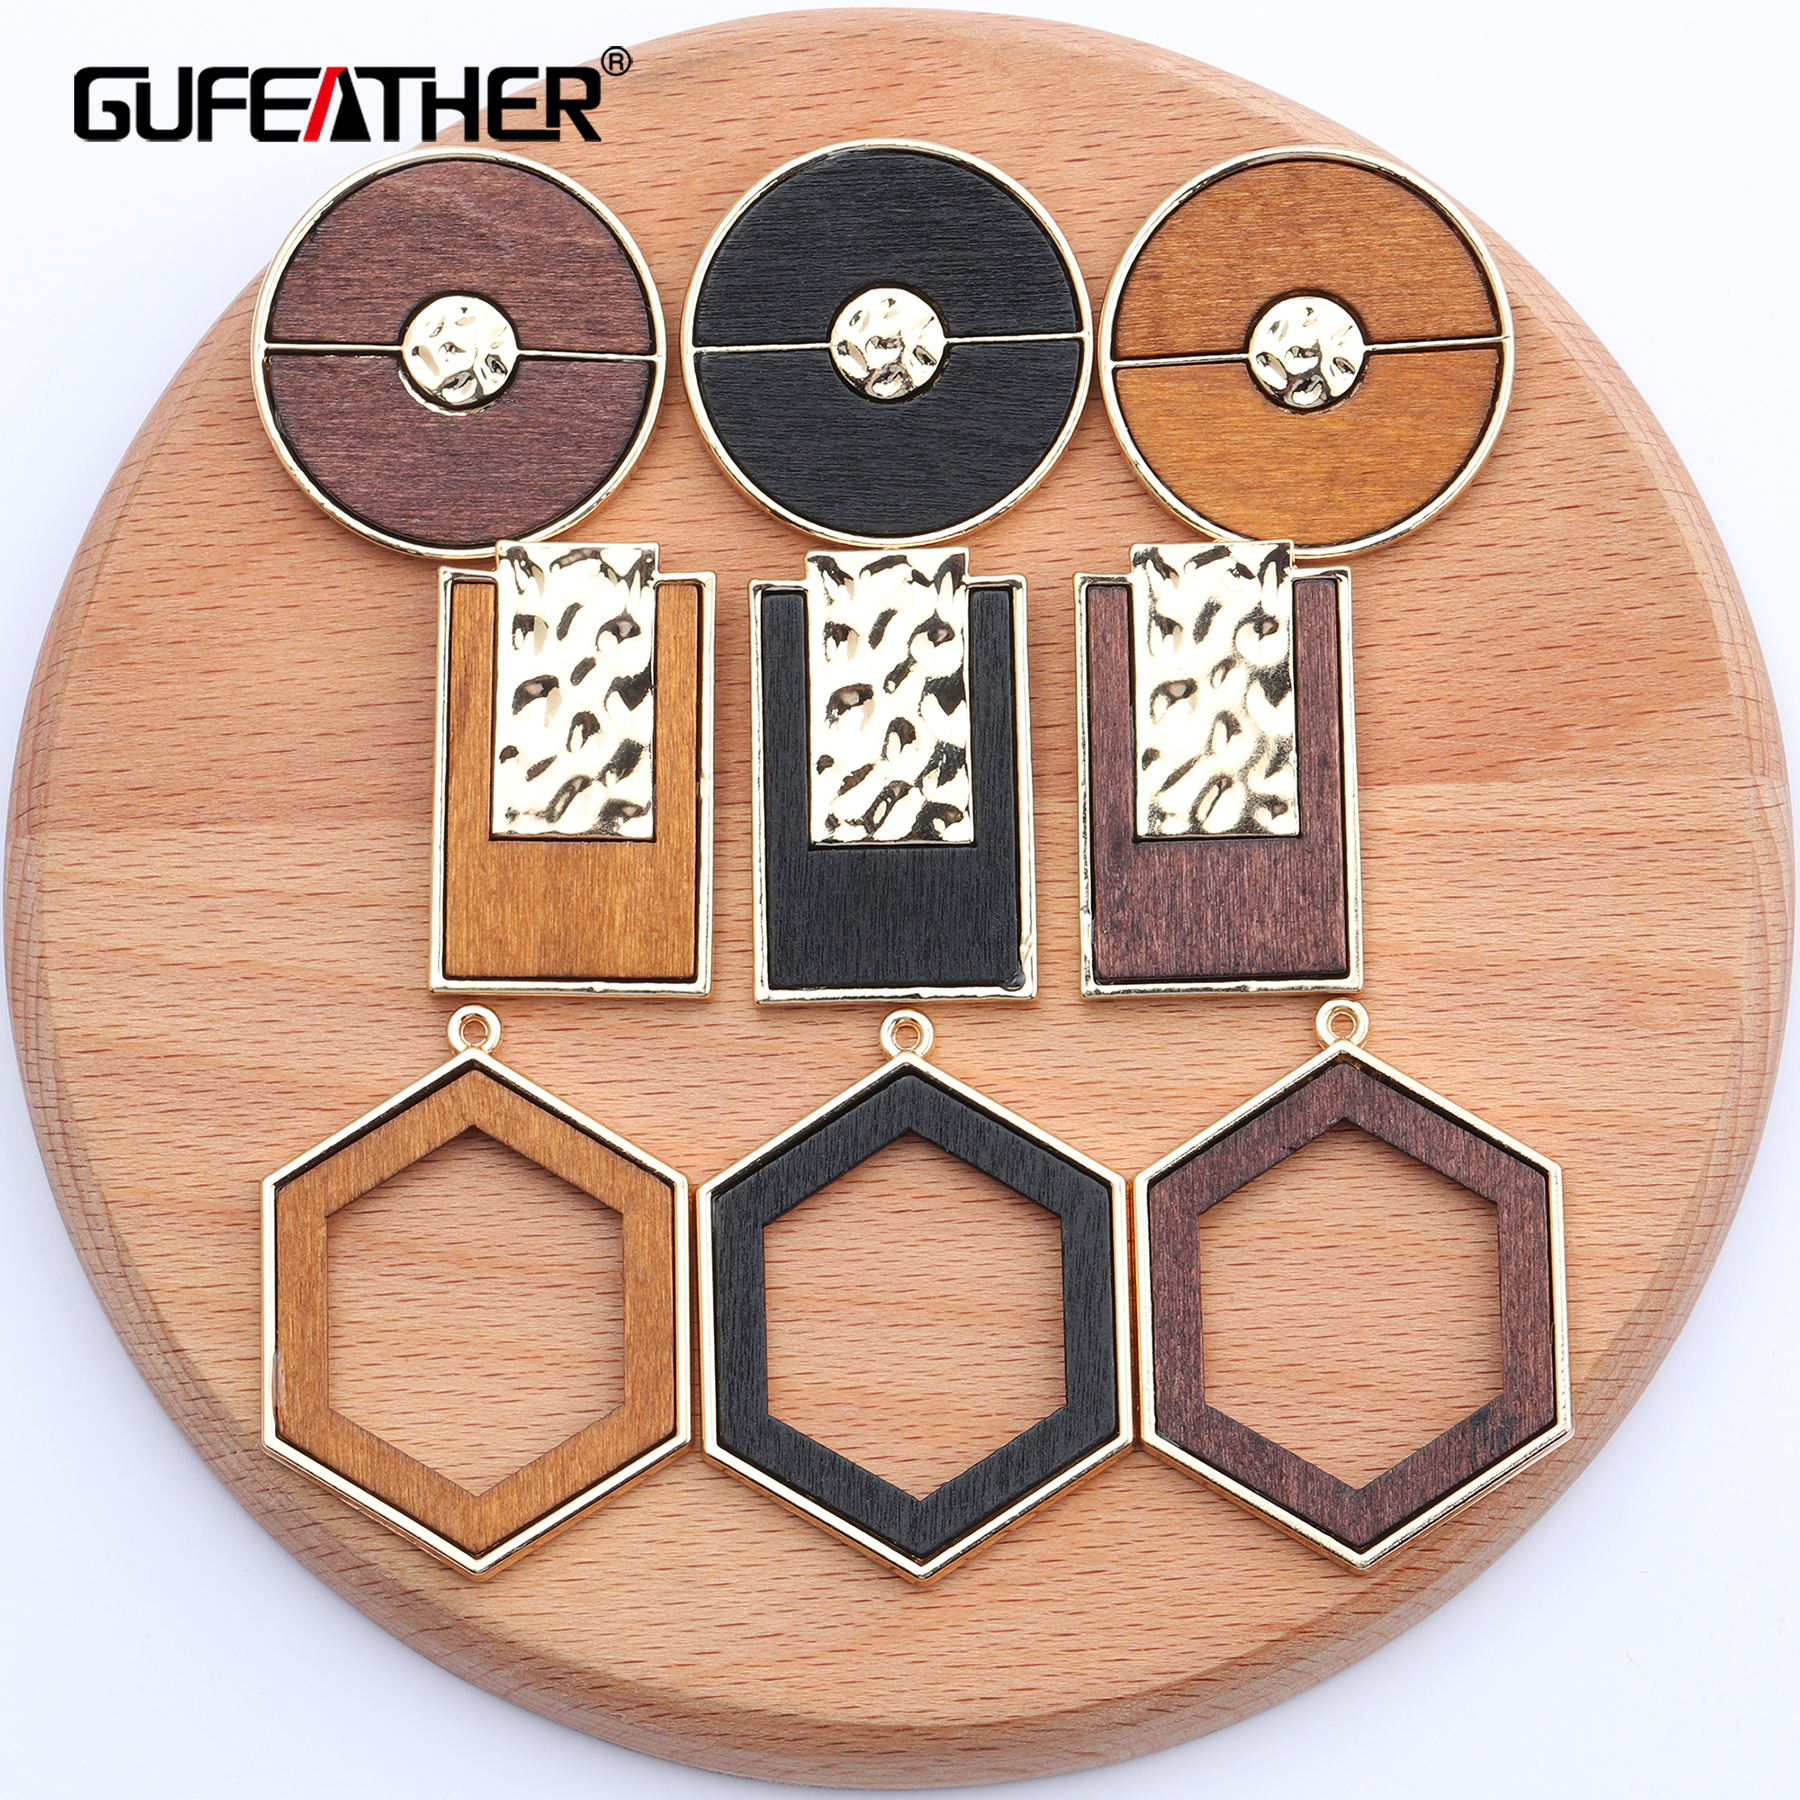 GUFEATHER M449,jewelry Accessories,hand Made,wood Pendant,copper Metal,round Square Shape,jewelry Making,diy Earring,10pcs/lot